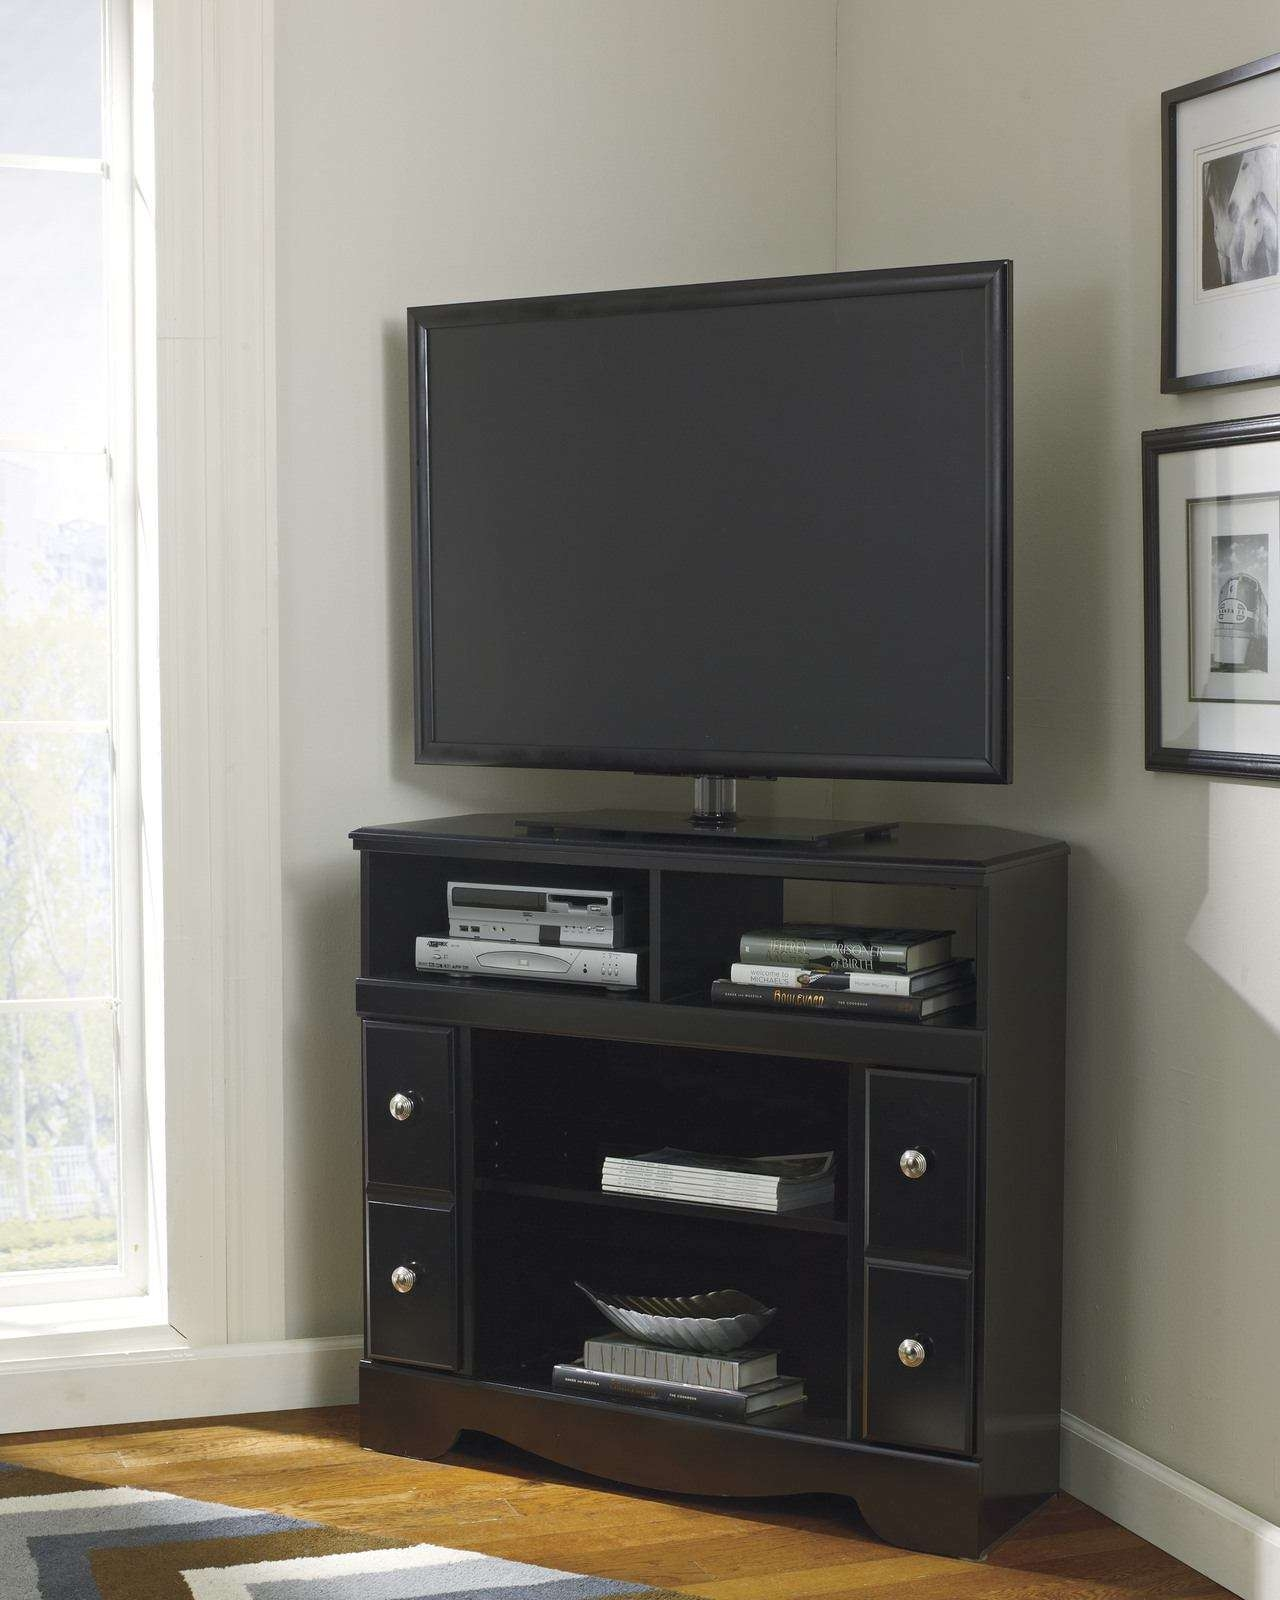 Corner Tv Stand With Fireplace Option In Black W271 12 Regarding Corner Tv Stands (View 4 of 15)